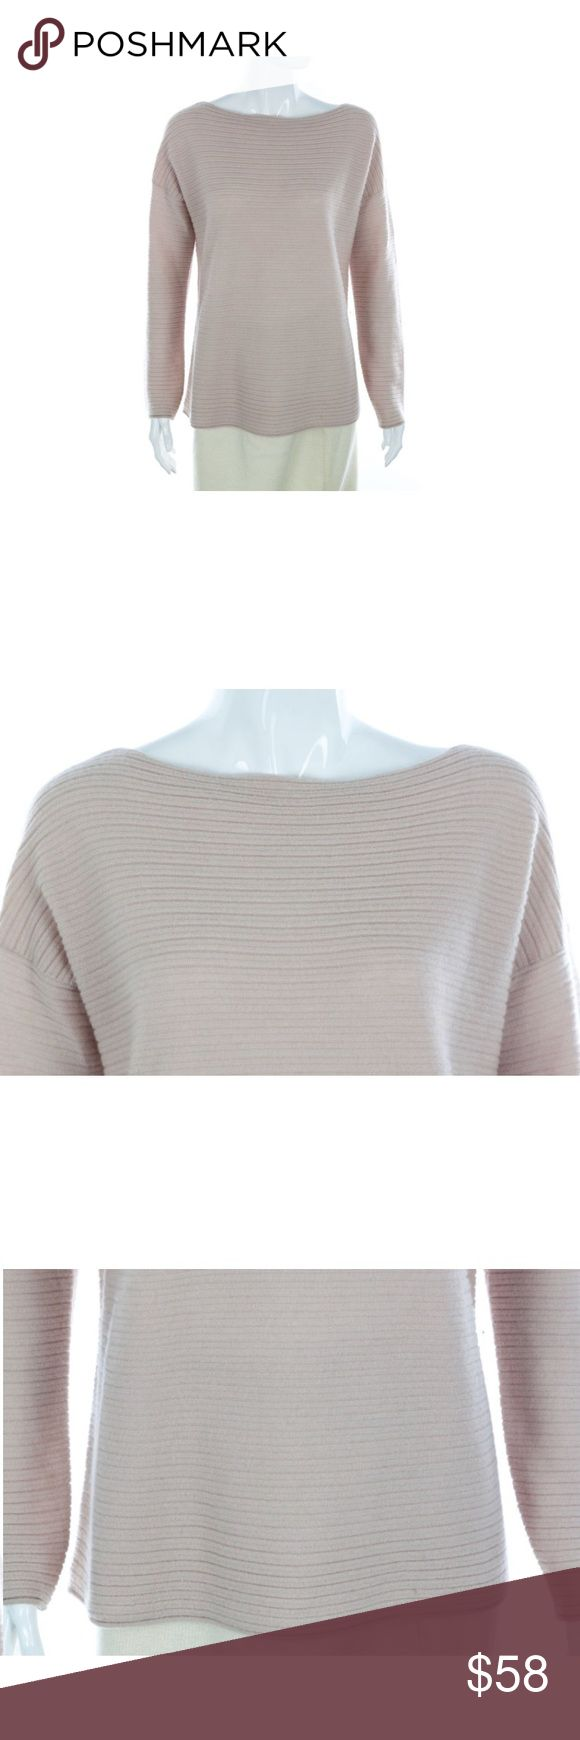 """Vince 100% Cashmere Pale Pink Ribbed Sweater Vince 100% Cashmere Pale Pink Ribbed Sweater  -  Size S Size small 100% Cashmere Boat neck Medium knit - perfect for layering in the spring Horizontal rib texture Roomy fit Long sleeve   Condition: Immaculate condition, some slight dirtiness at bottom hem of cuff. Very slight and can be easily hand washed or dry cleaned (Second hand item-has been worn by previous owner).  Measurements  Length: 26""""  Chest: 42"""" Waist: 41"""" Arm: 22"""" Vince Sweaters"""